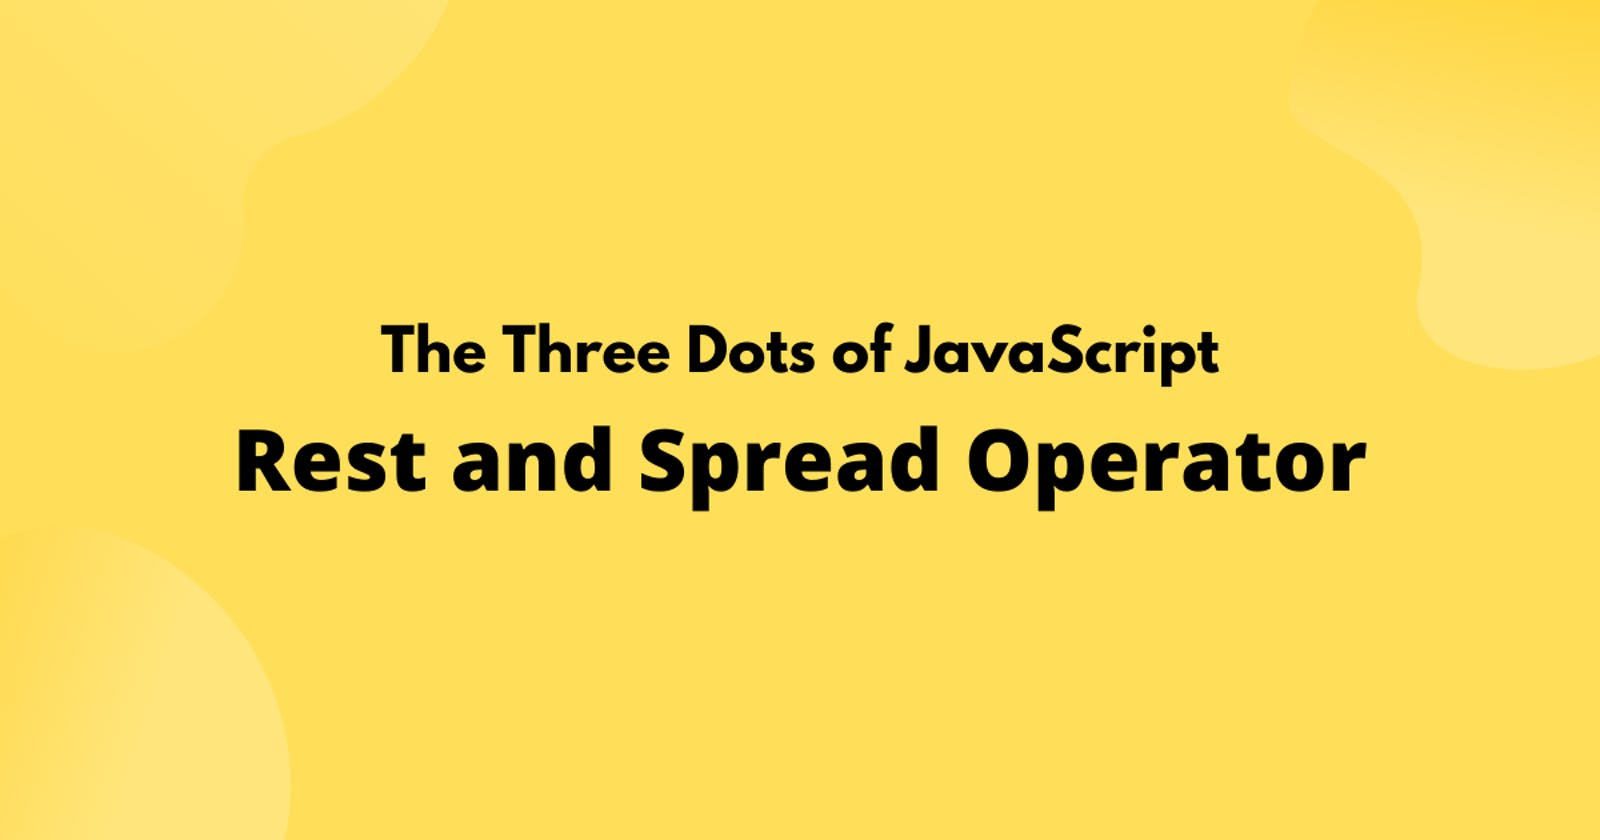 The Three Dots of JavaScript: Rest and Spread Operator